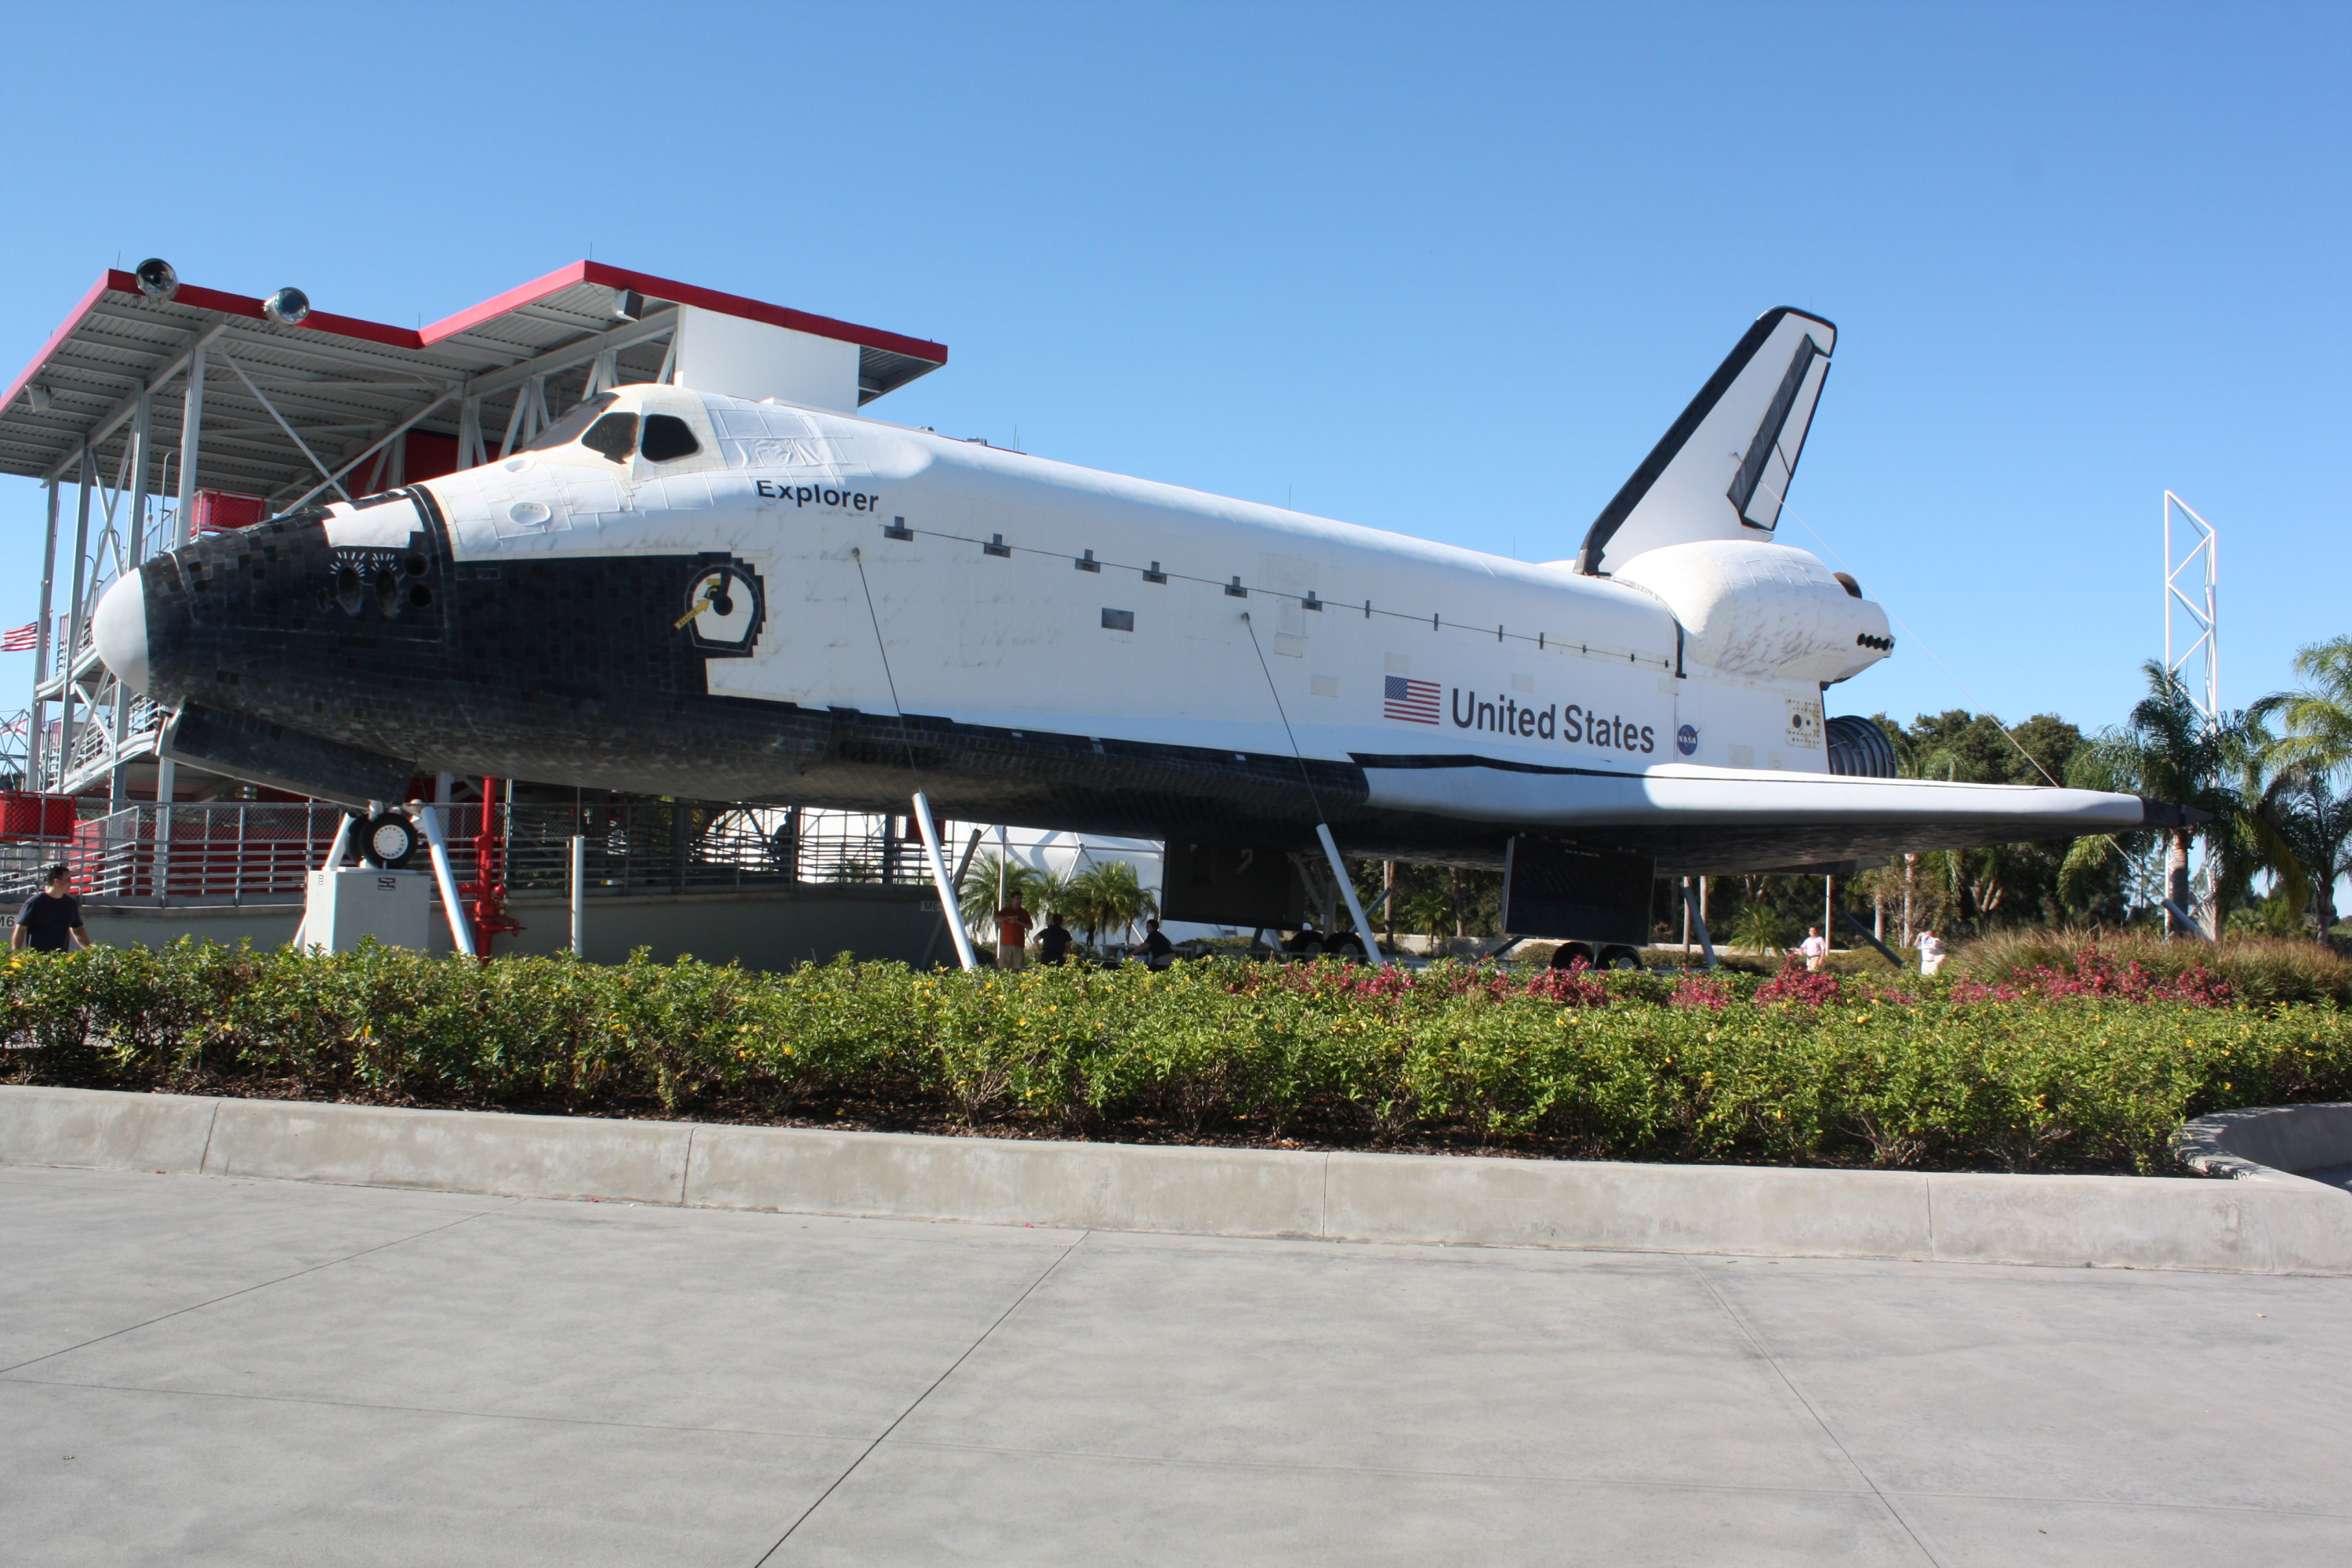 space shuttle explorer is real - photo #7